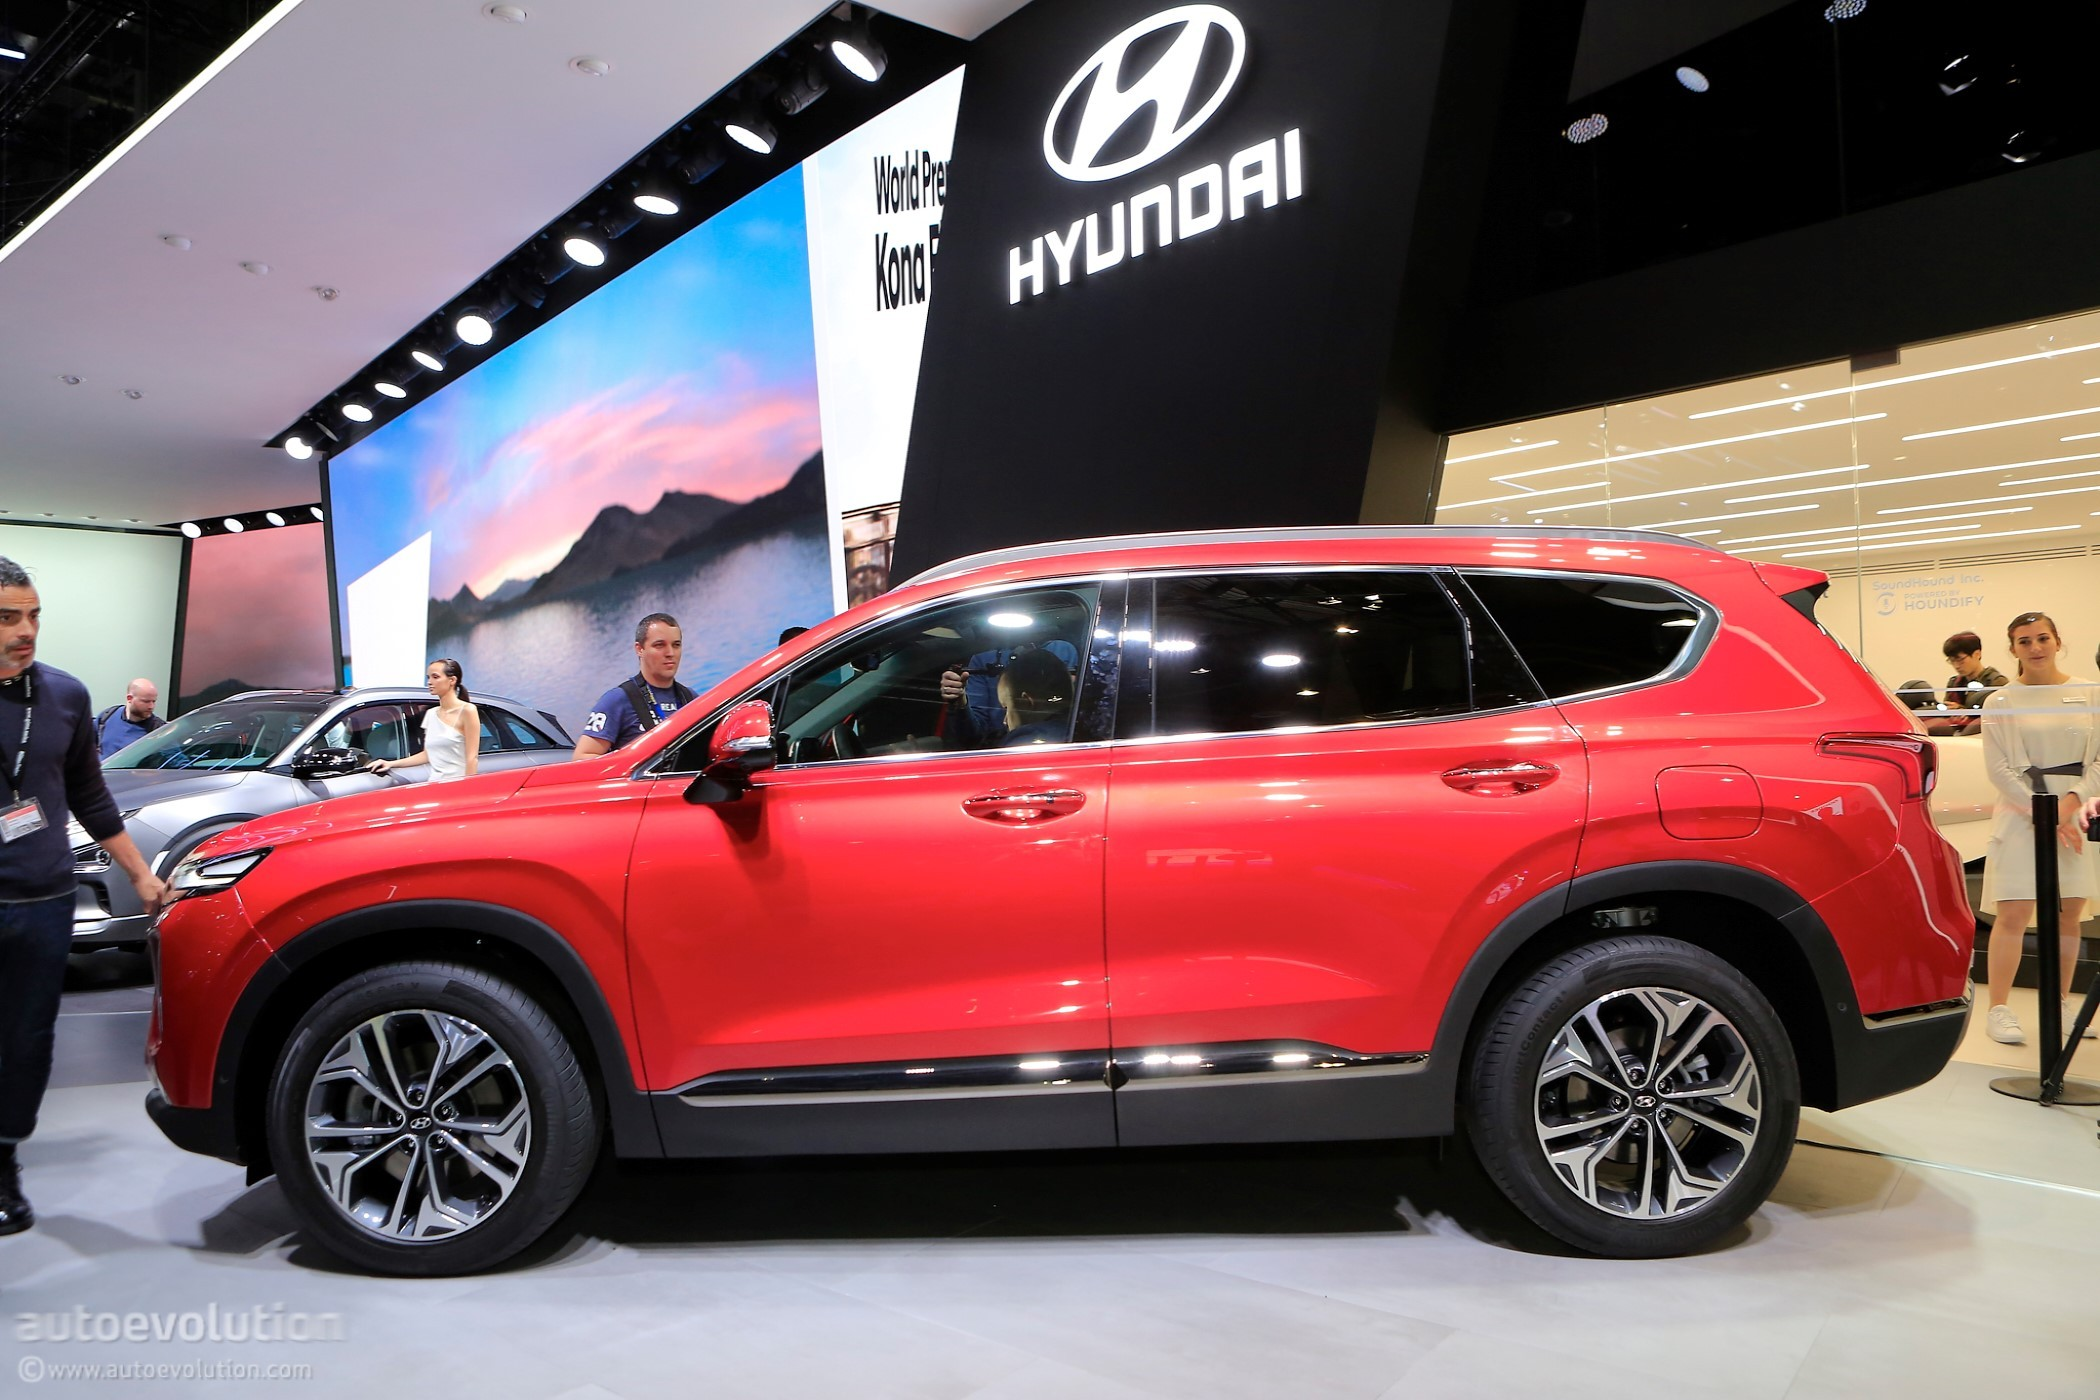 Car Engines For Sale >> Hyundai Bringing New Santa Fe, Tucson Facelift and Kona EV to New York - autoevolution